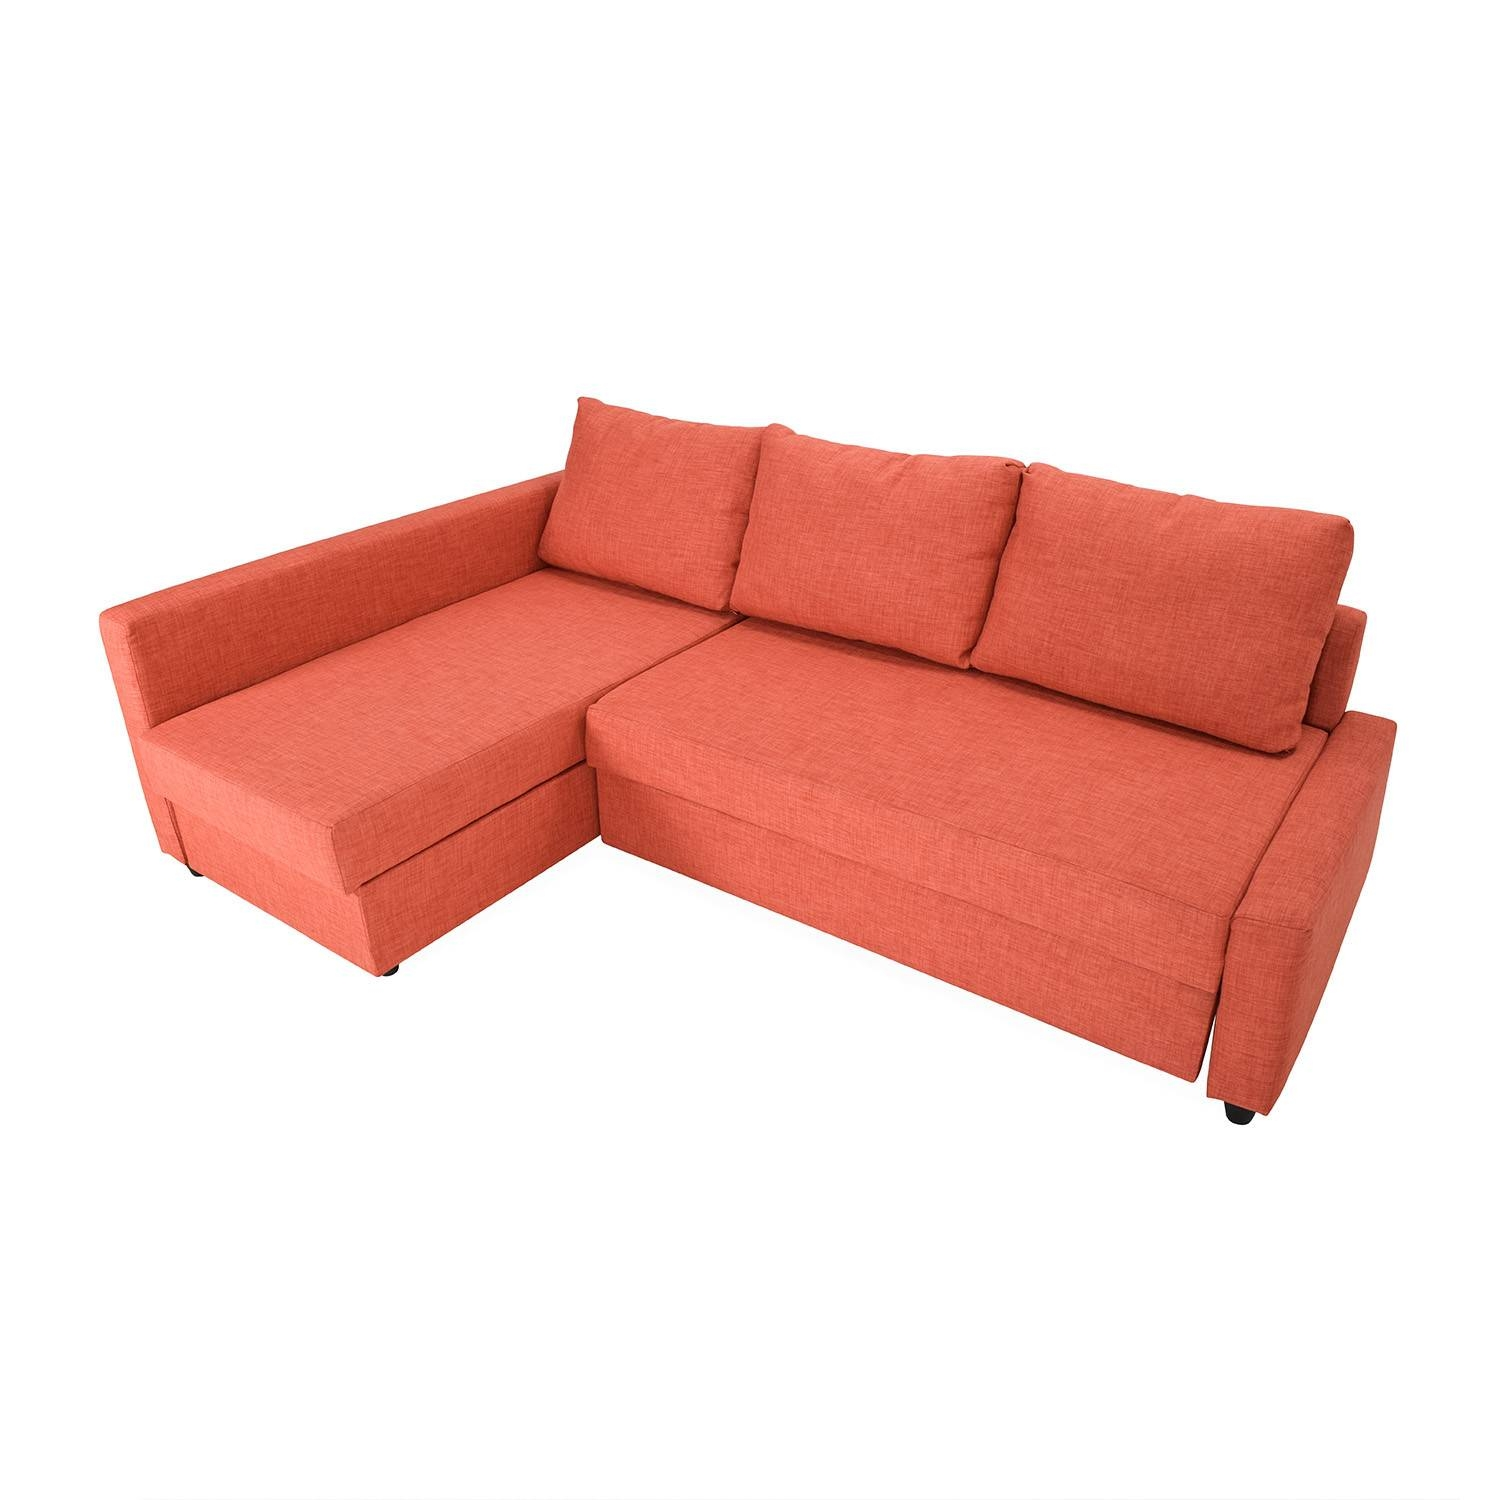 49% Off - Ikea Friheten Sofa Bed With Chaise / Sofas throughout Orange Ikea Sofas (Image 3 of 30)